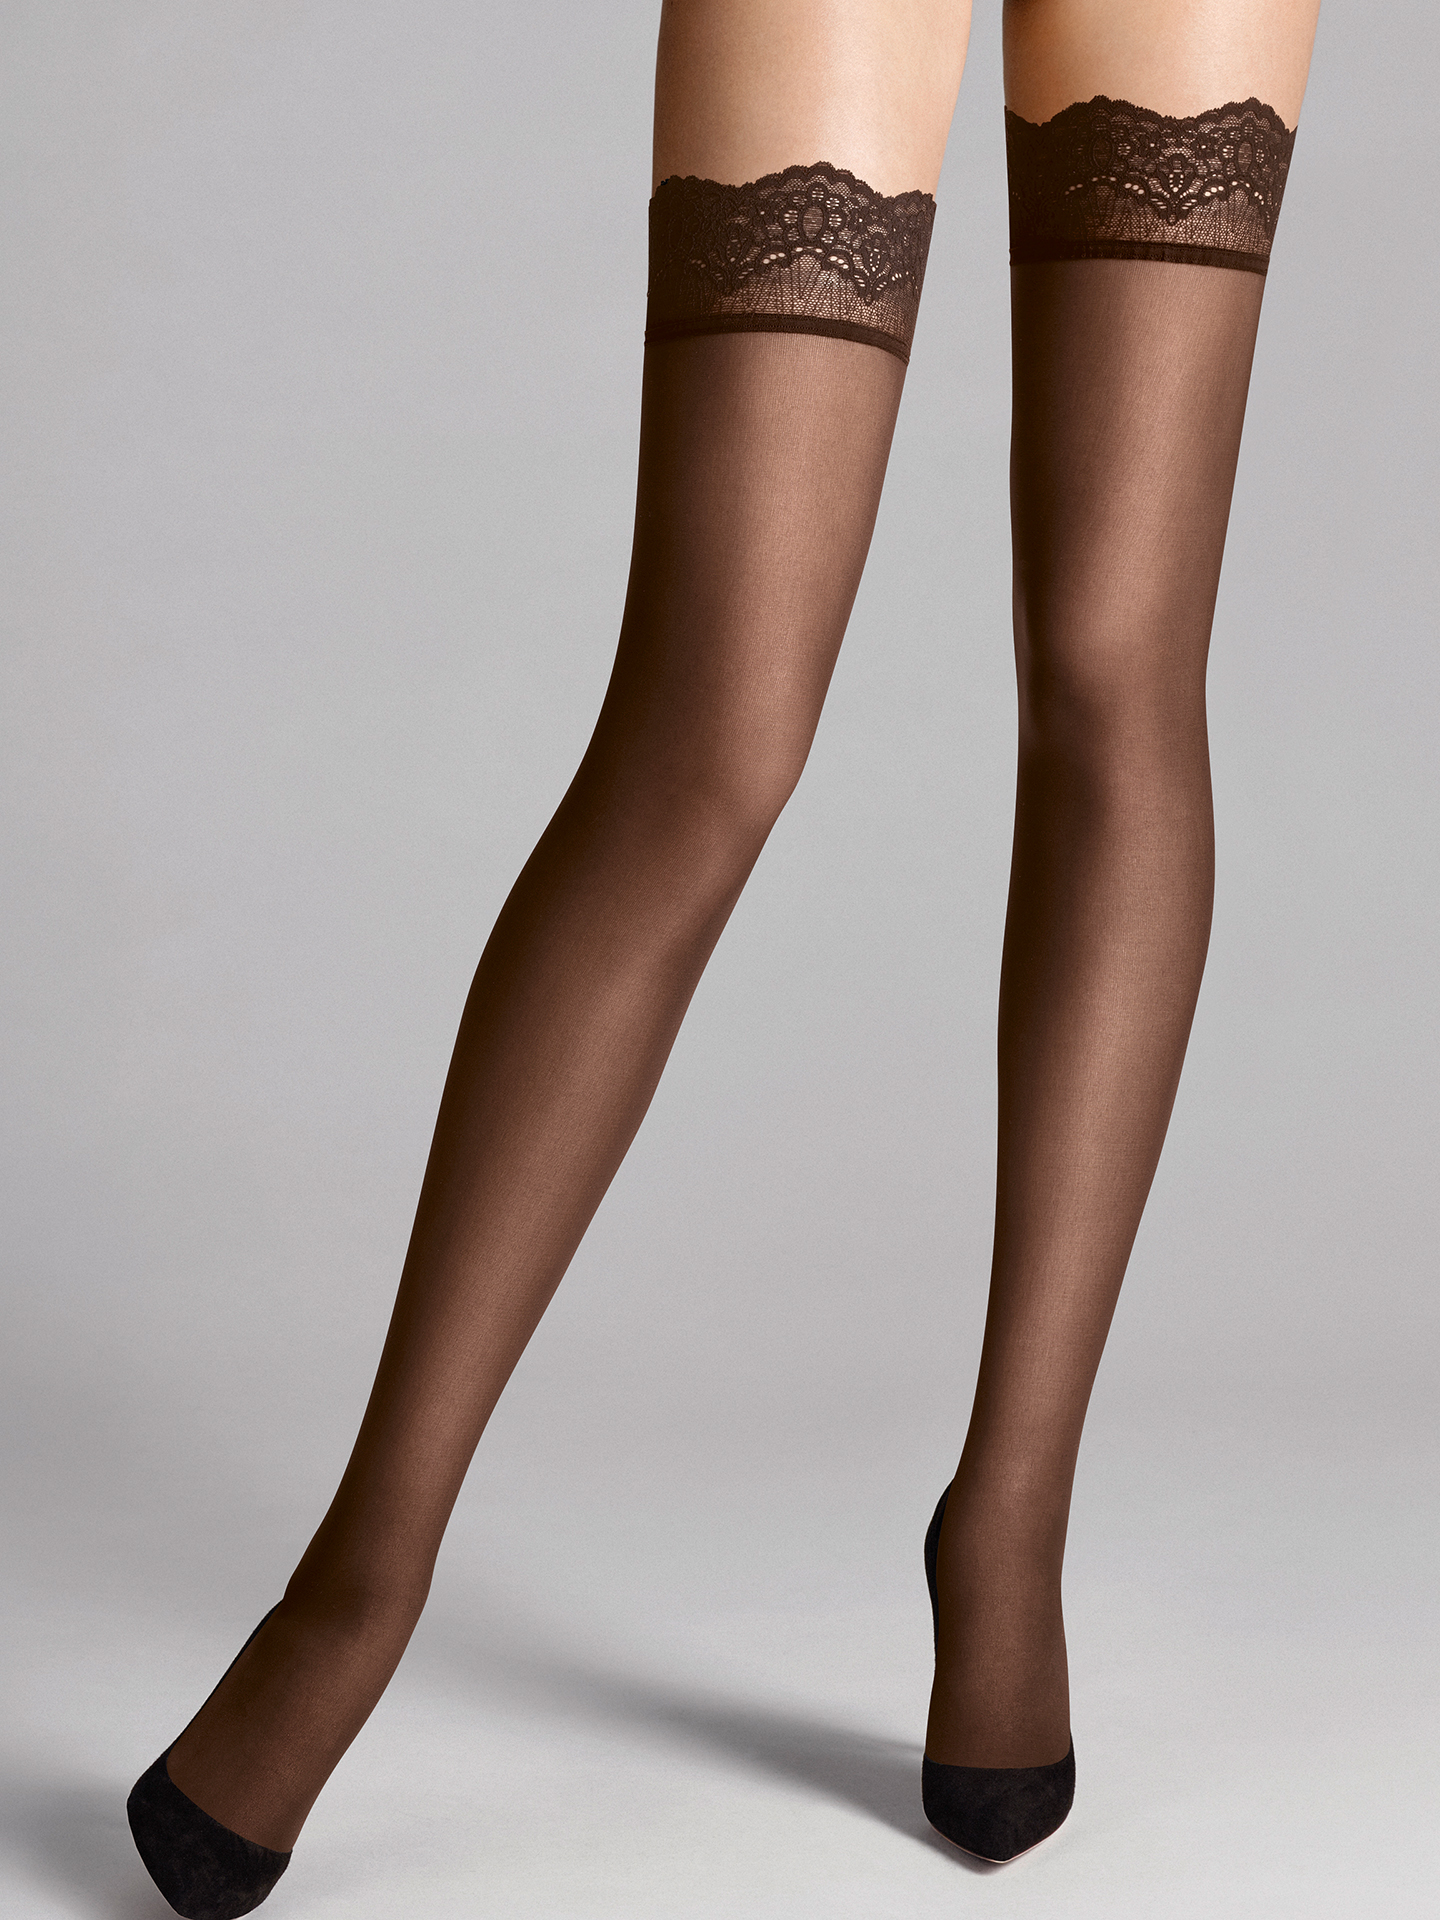 Wolford Apparel & Accessories > Clothing > Autoreggenti & Calze Velvet Light 40 Stay-Up